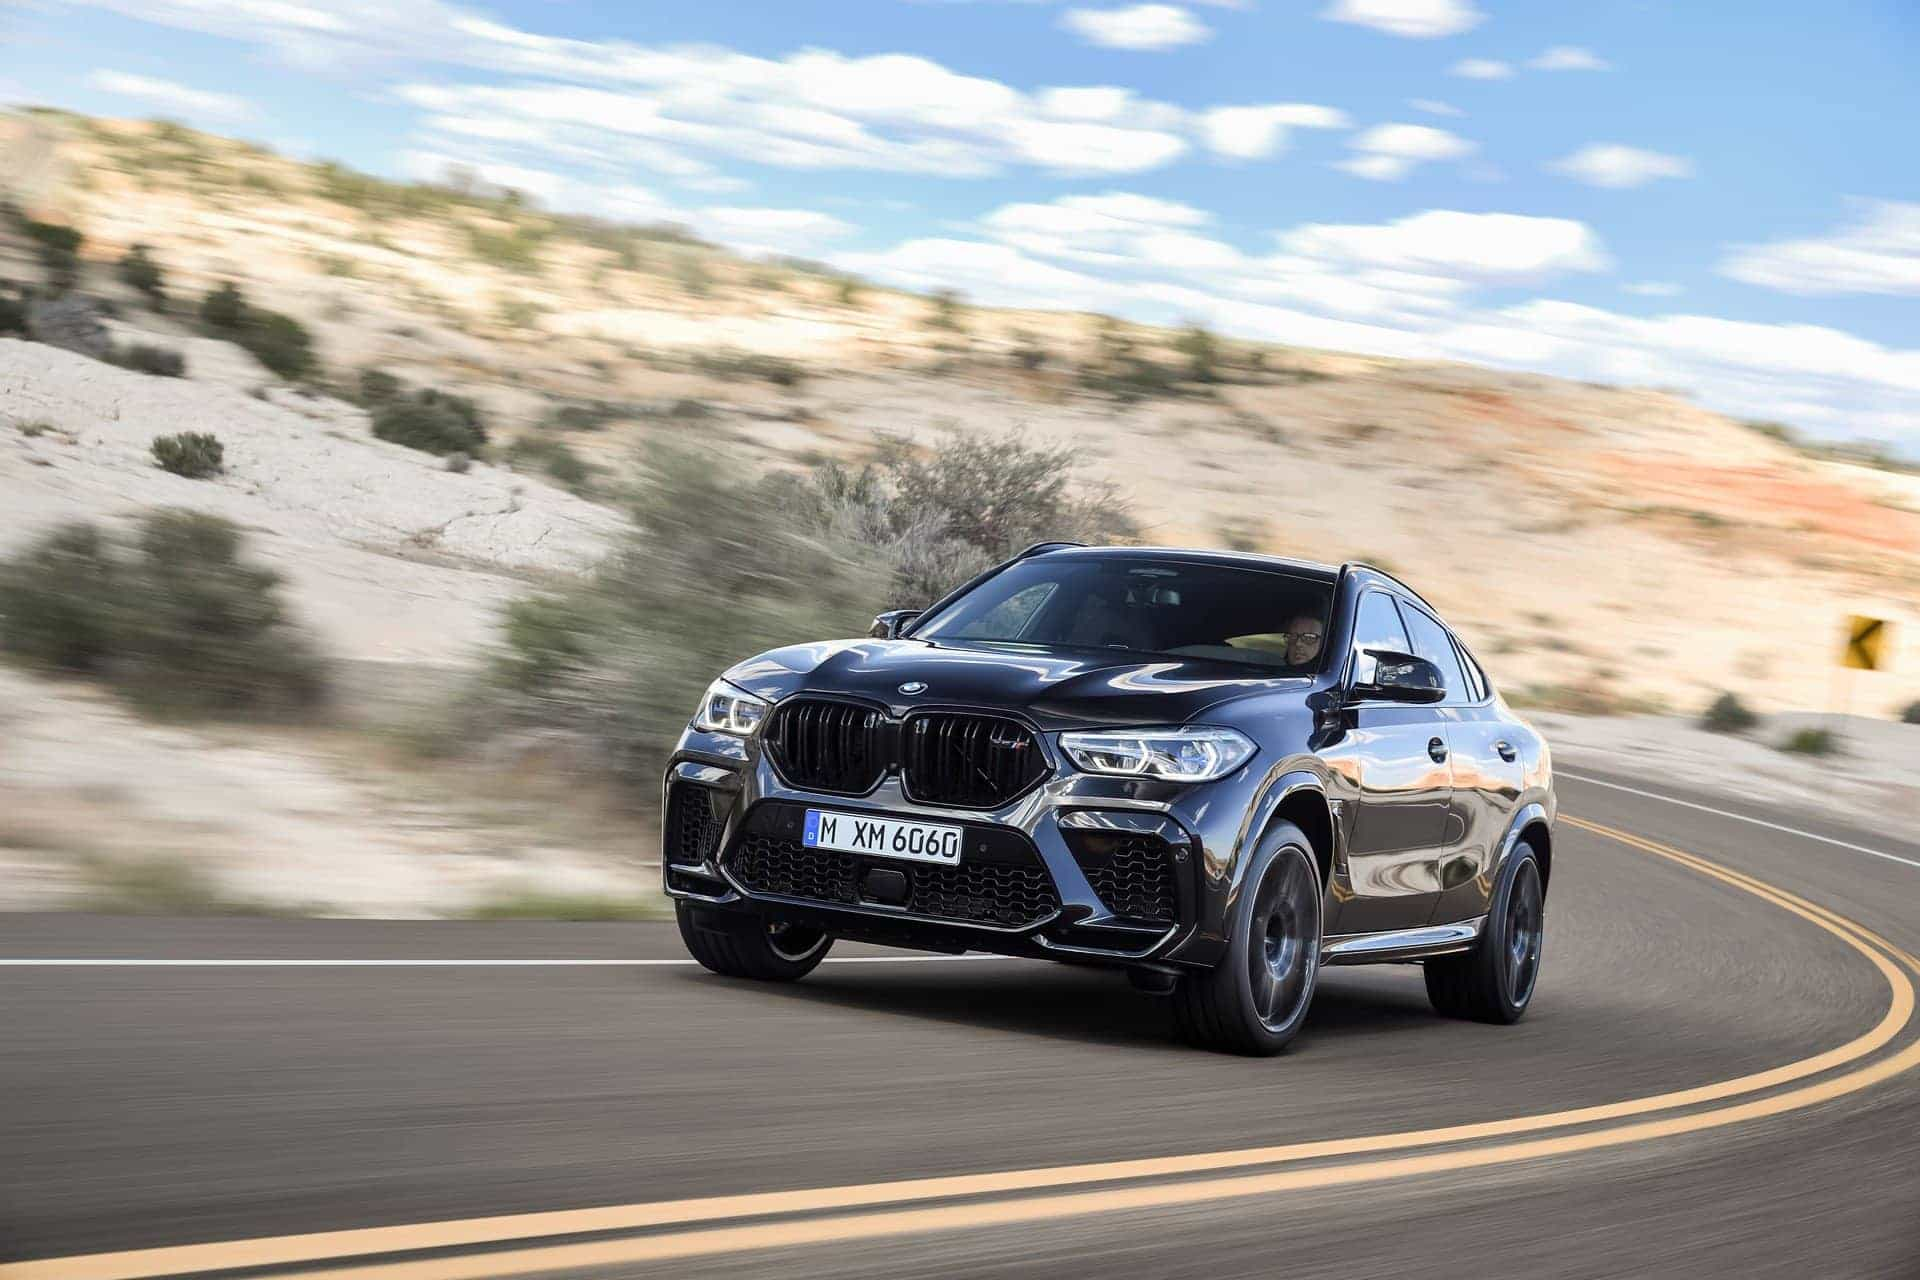 6bb58512-2020-bmw-x5-m-x6-mr-74